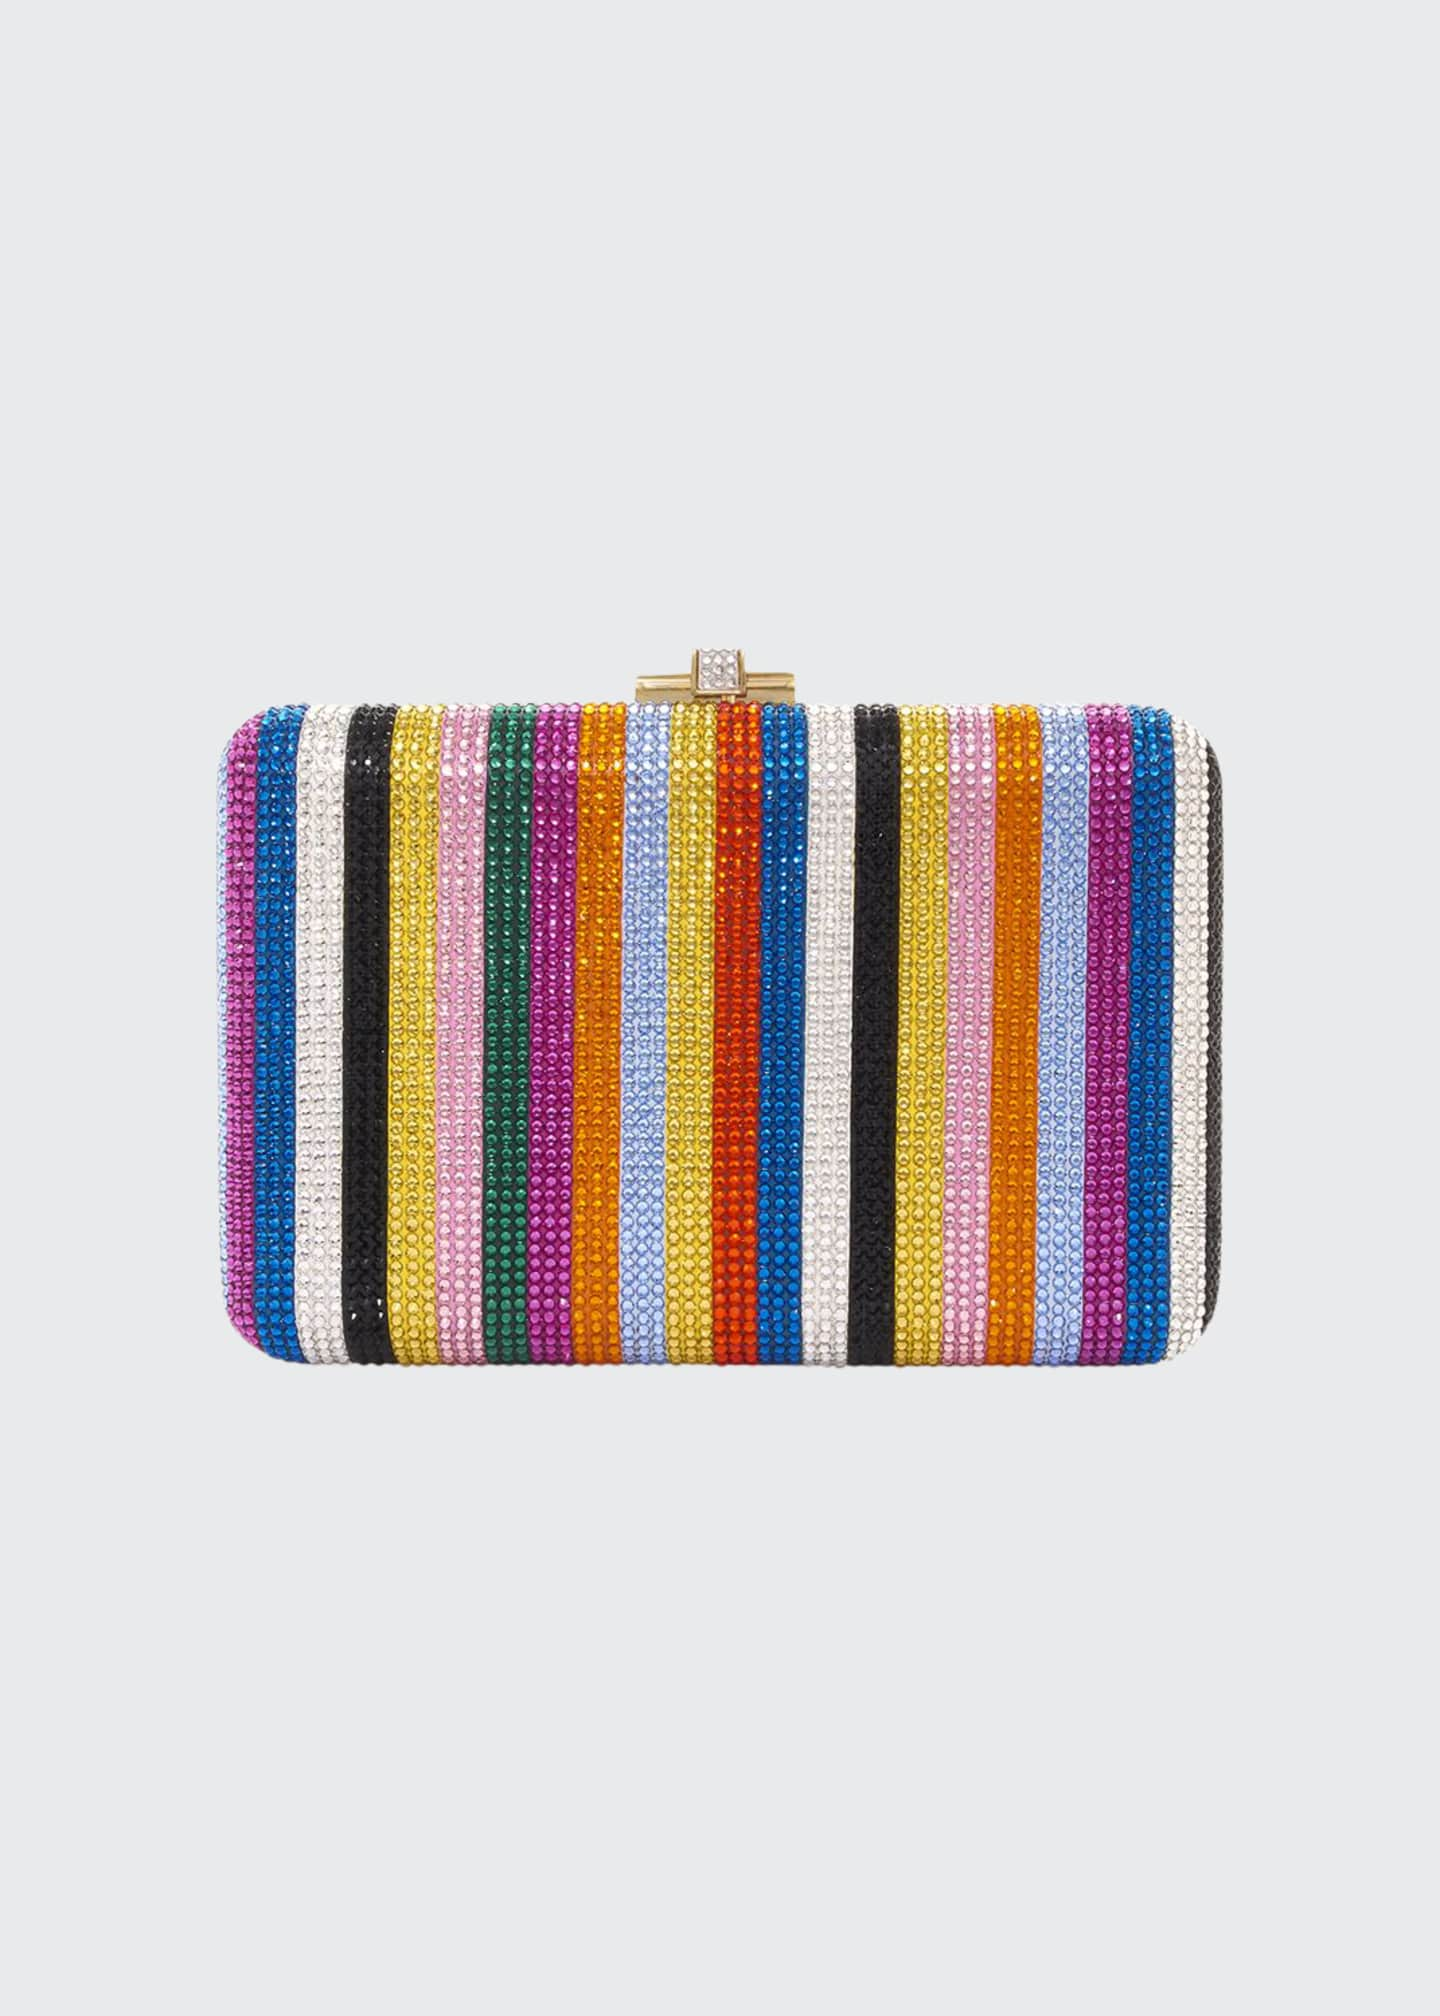 Judith Leiber Couture Candy Stripes Slim Clutch Bag